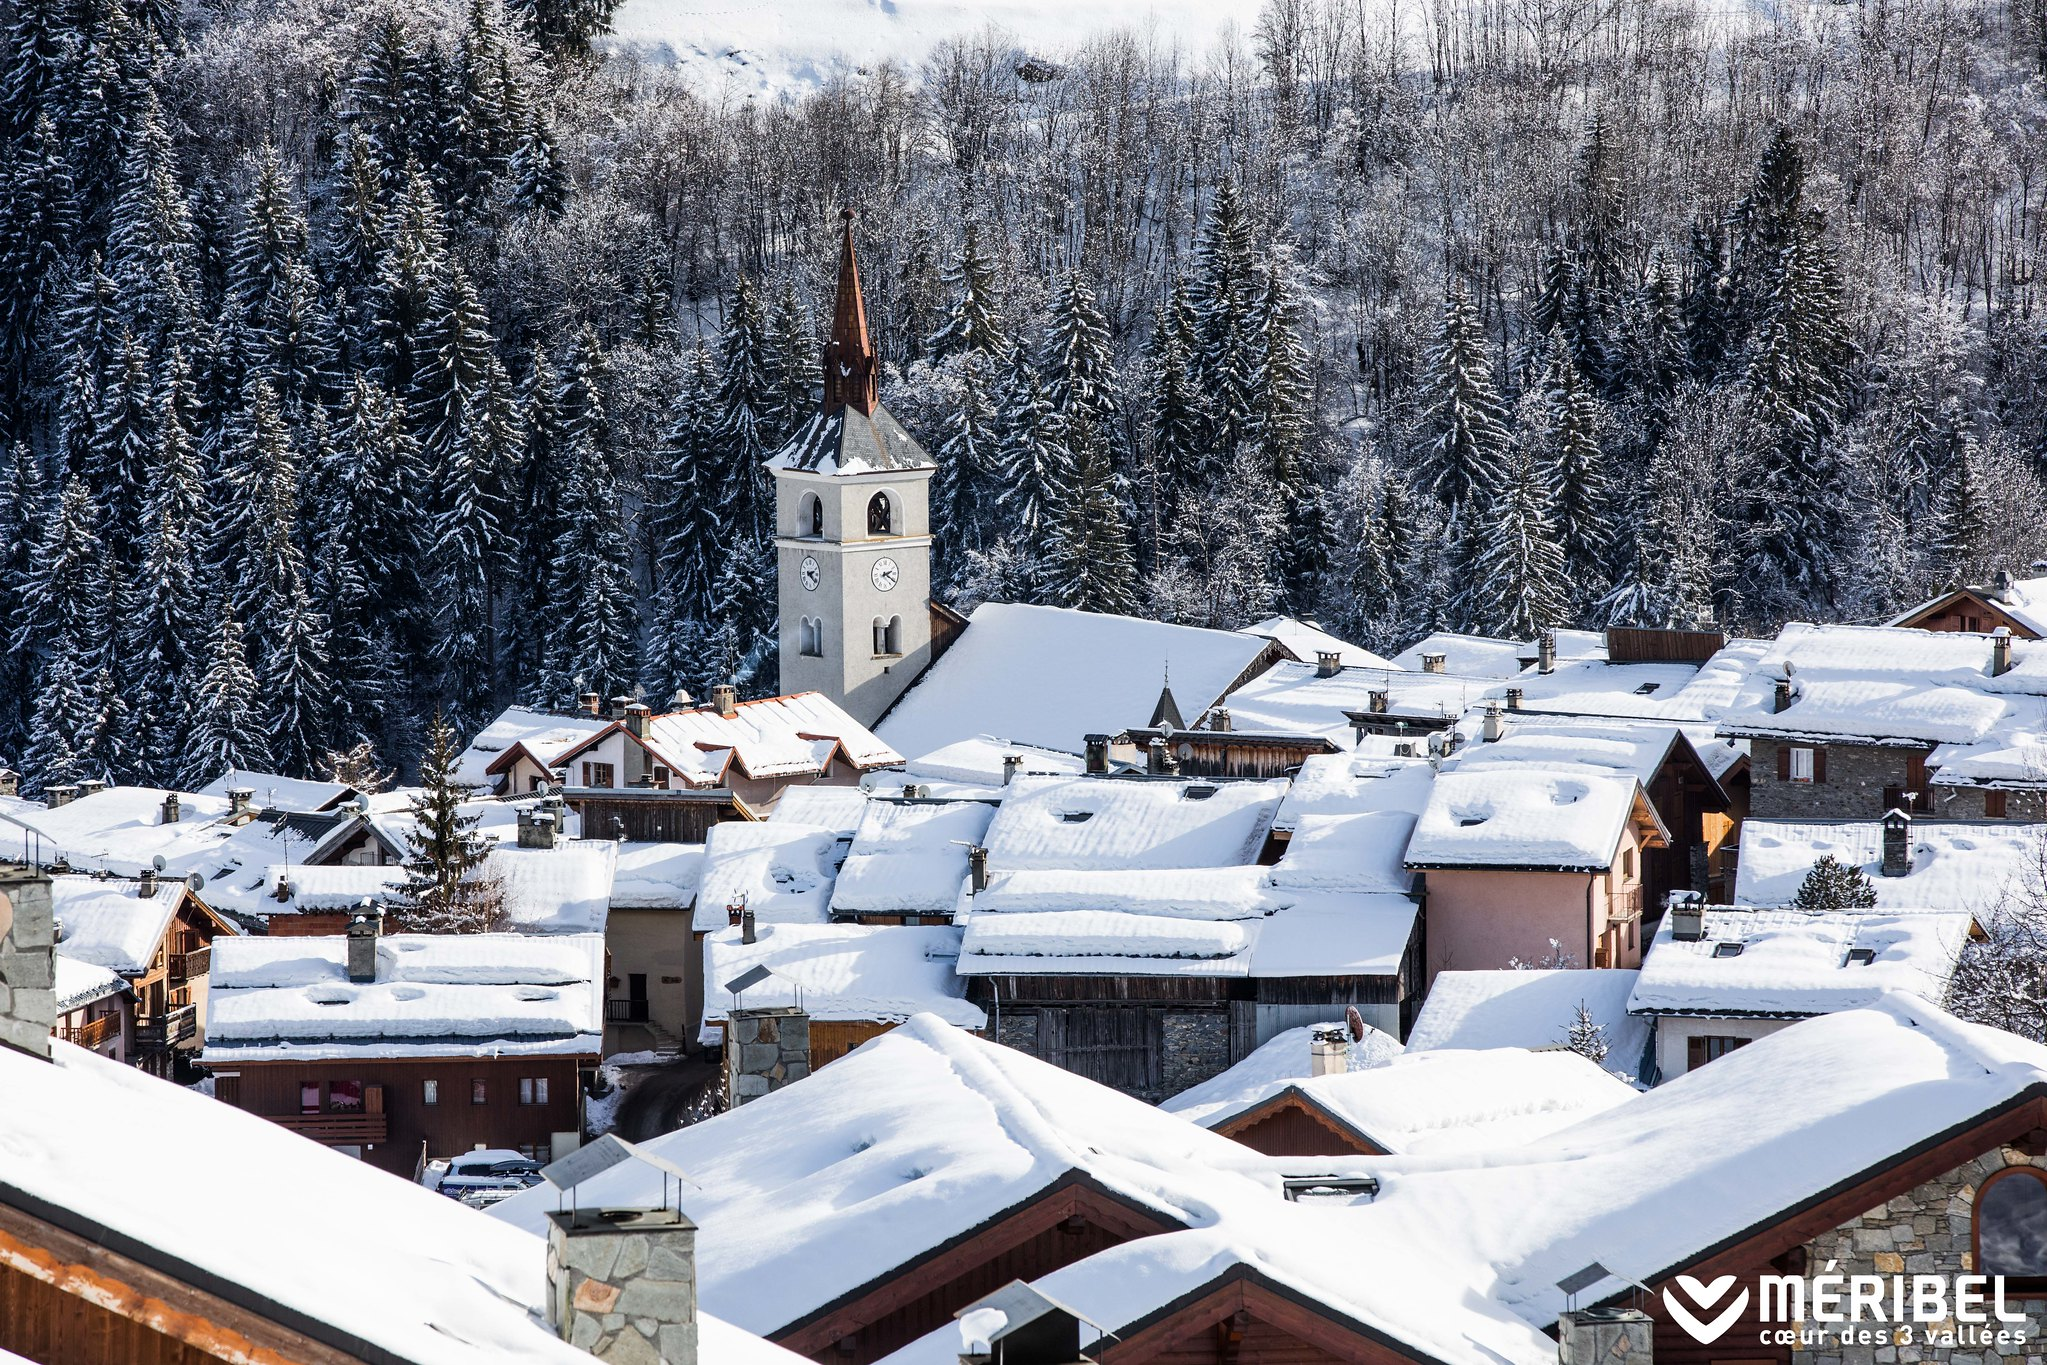 ​Reasons why the village of Meribel Les Allues is the best place in Meribel to stay in for a winter holiday